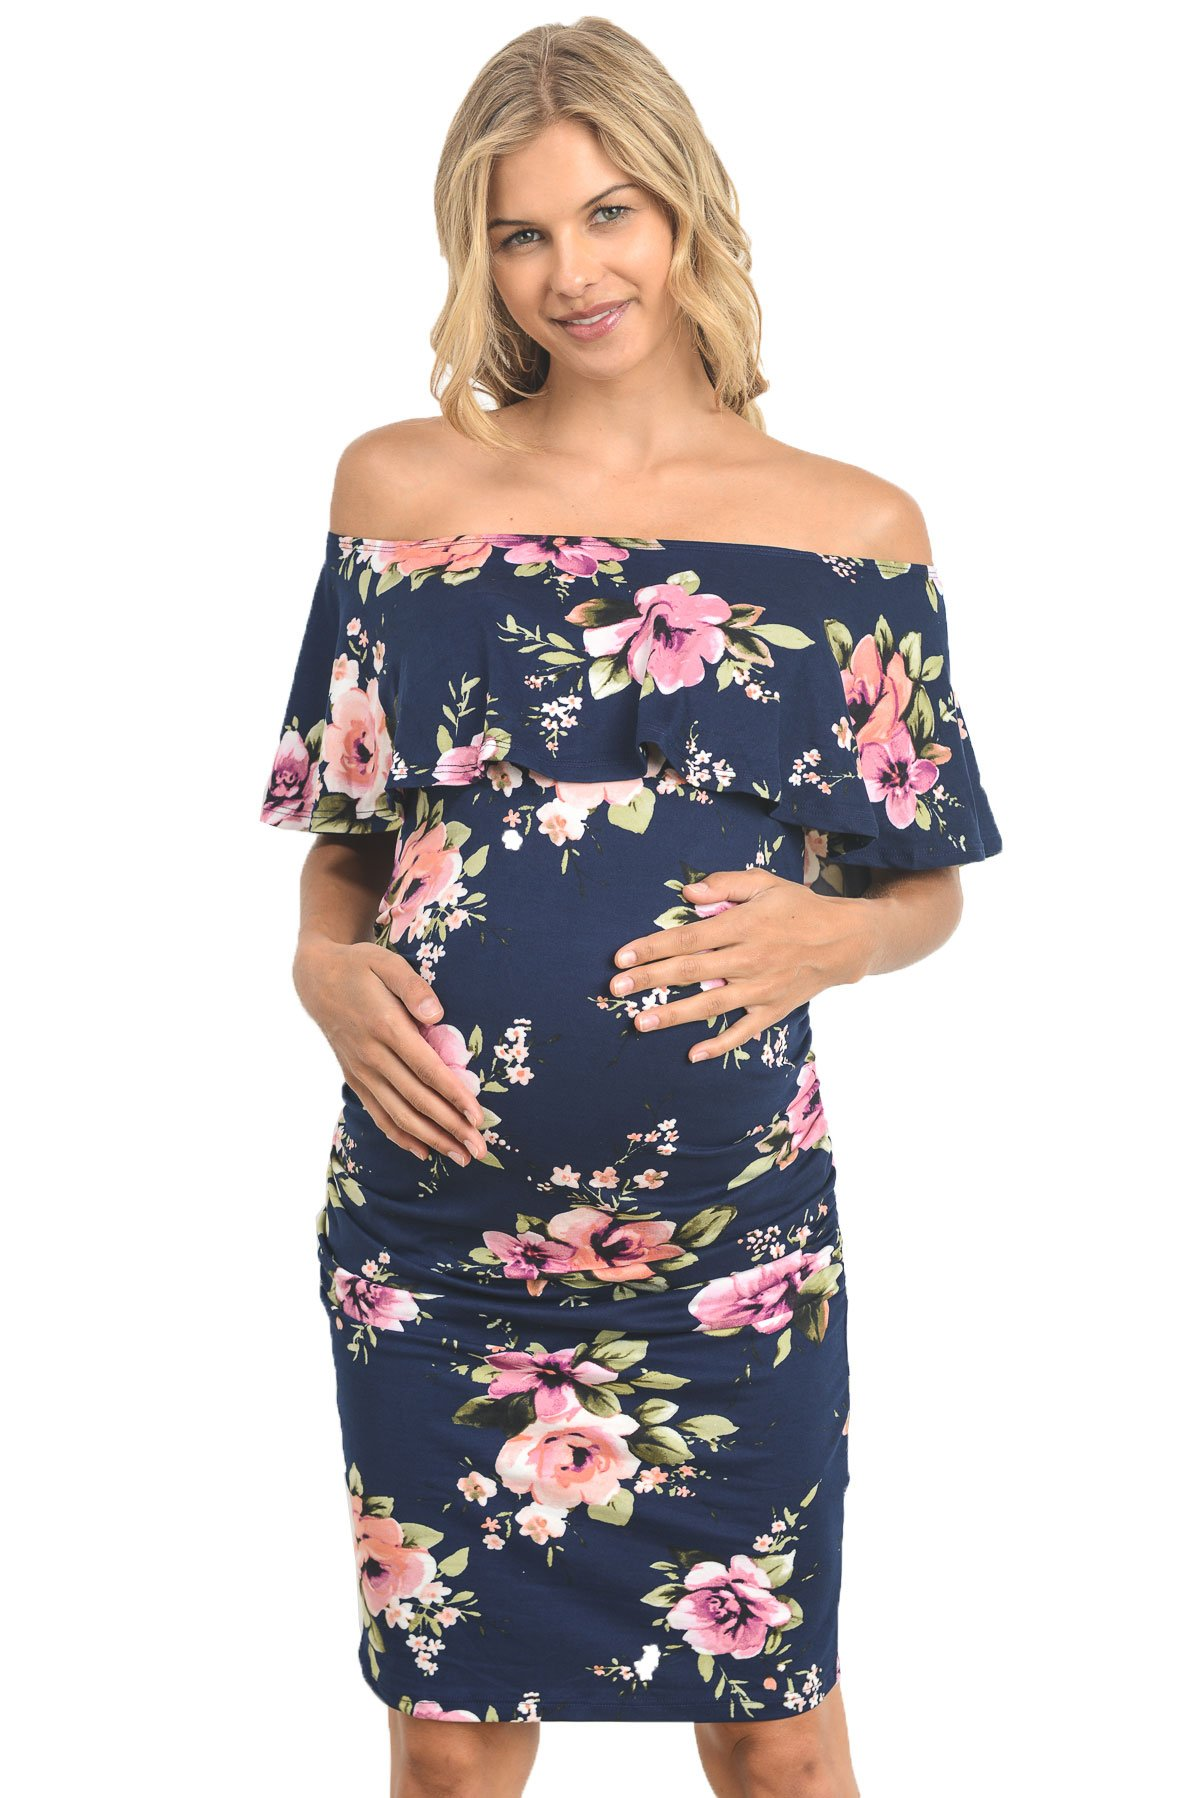 Hello MIZ Women's Floral Ruffle Off Shoulder Maternity Dress - Made in USA (Small, Navy)